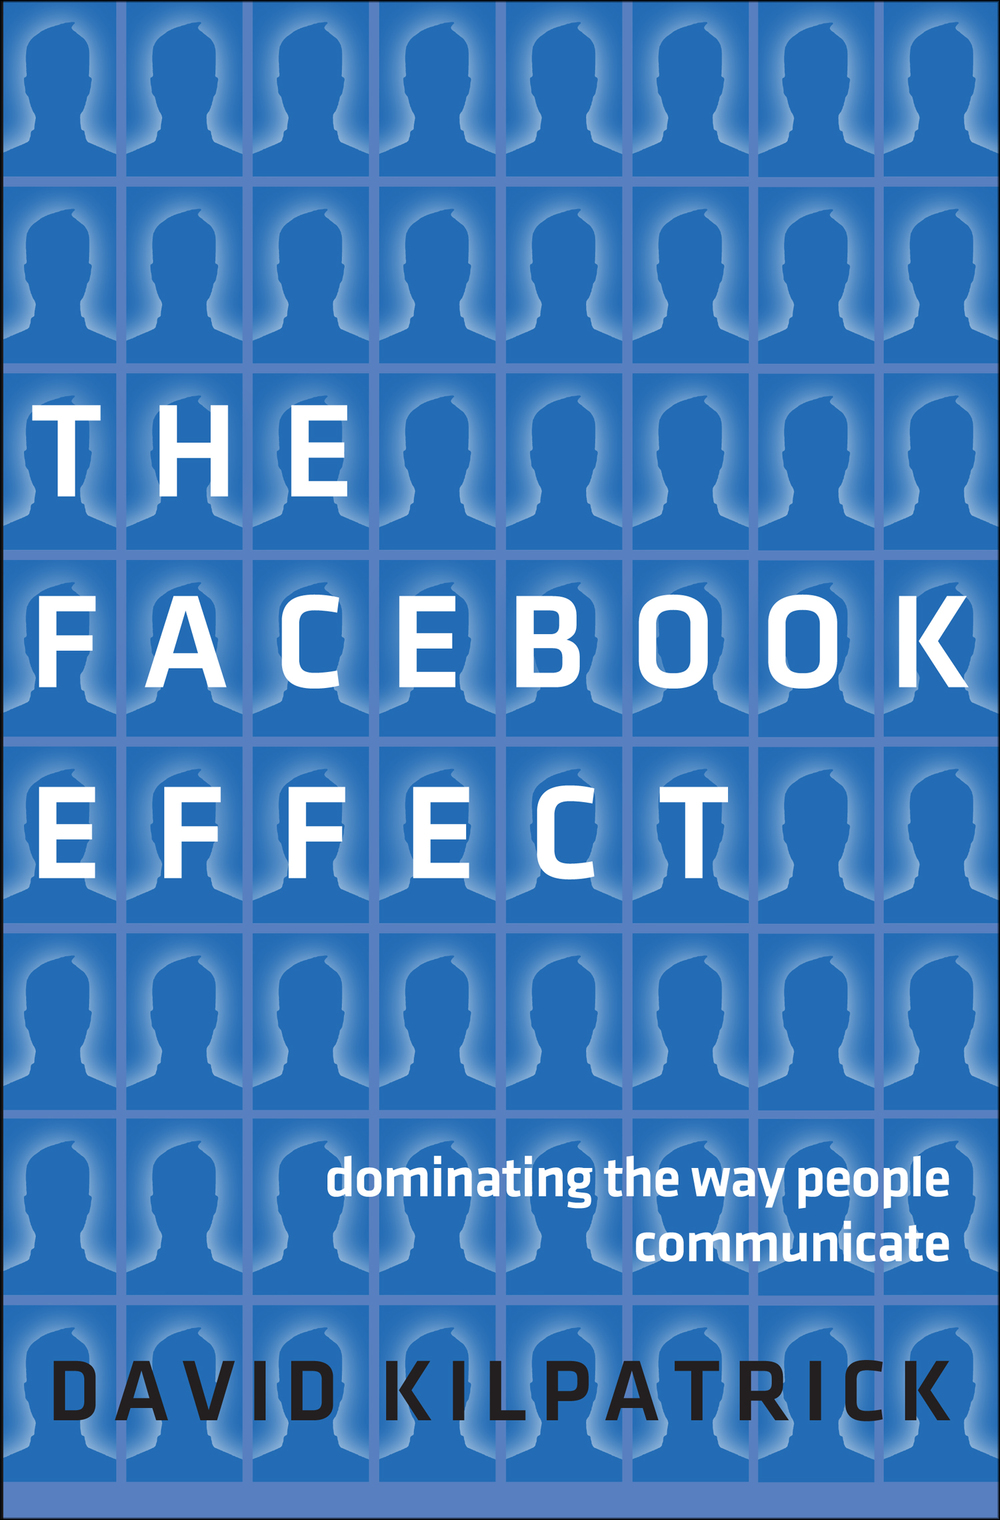 THE-FACEBOOK-EFFECT-comp-ss6.jpg